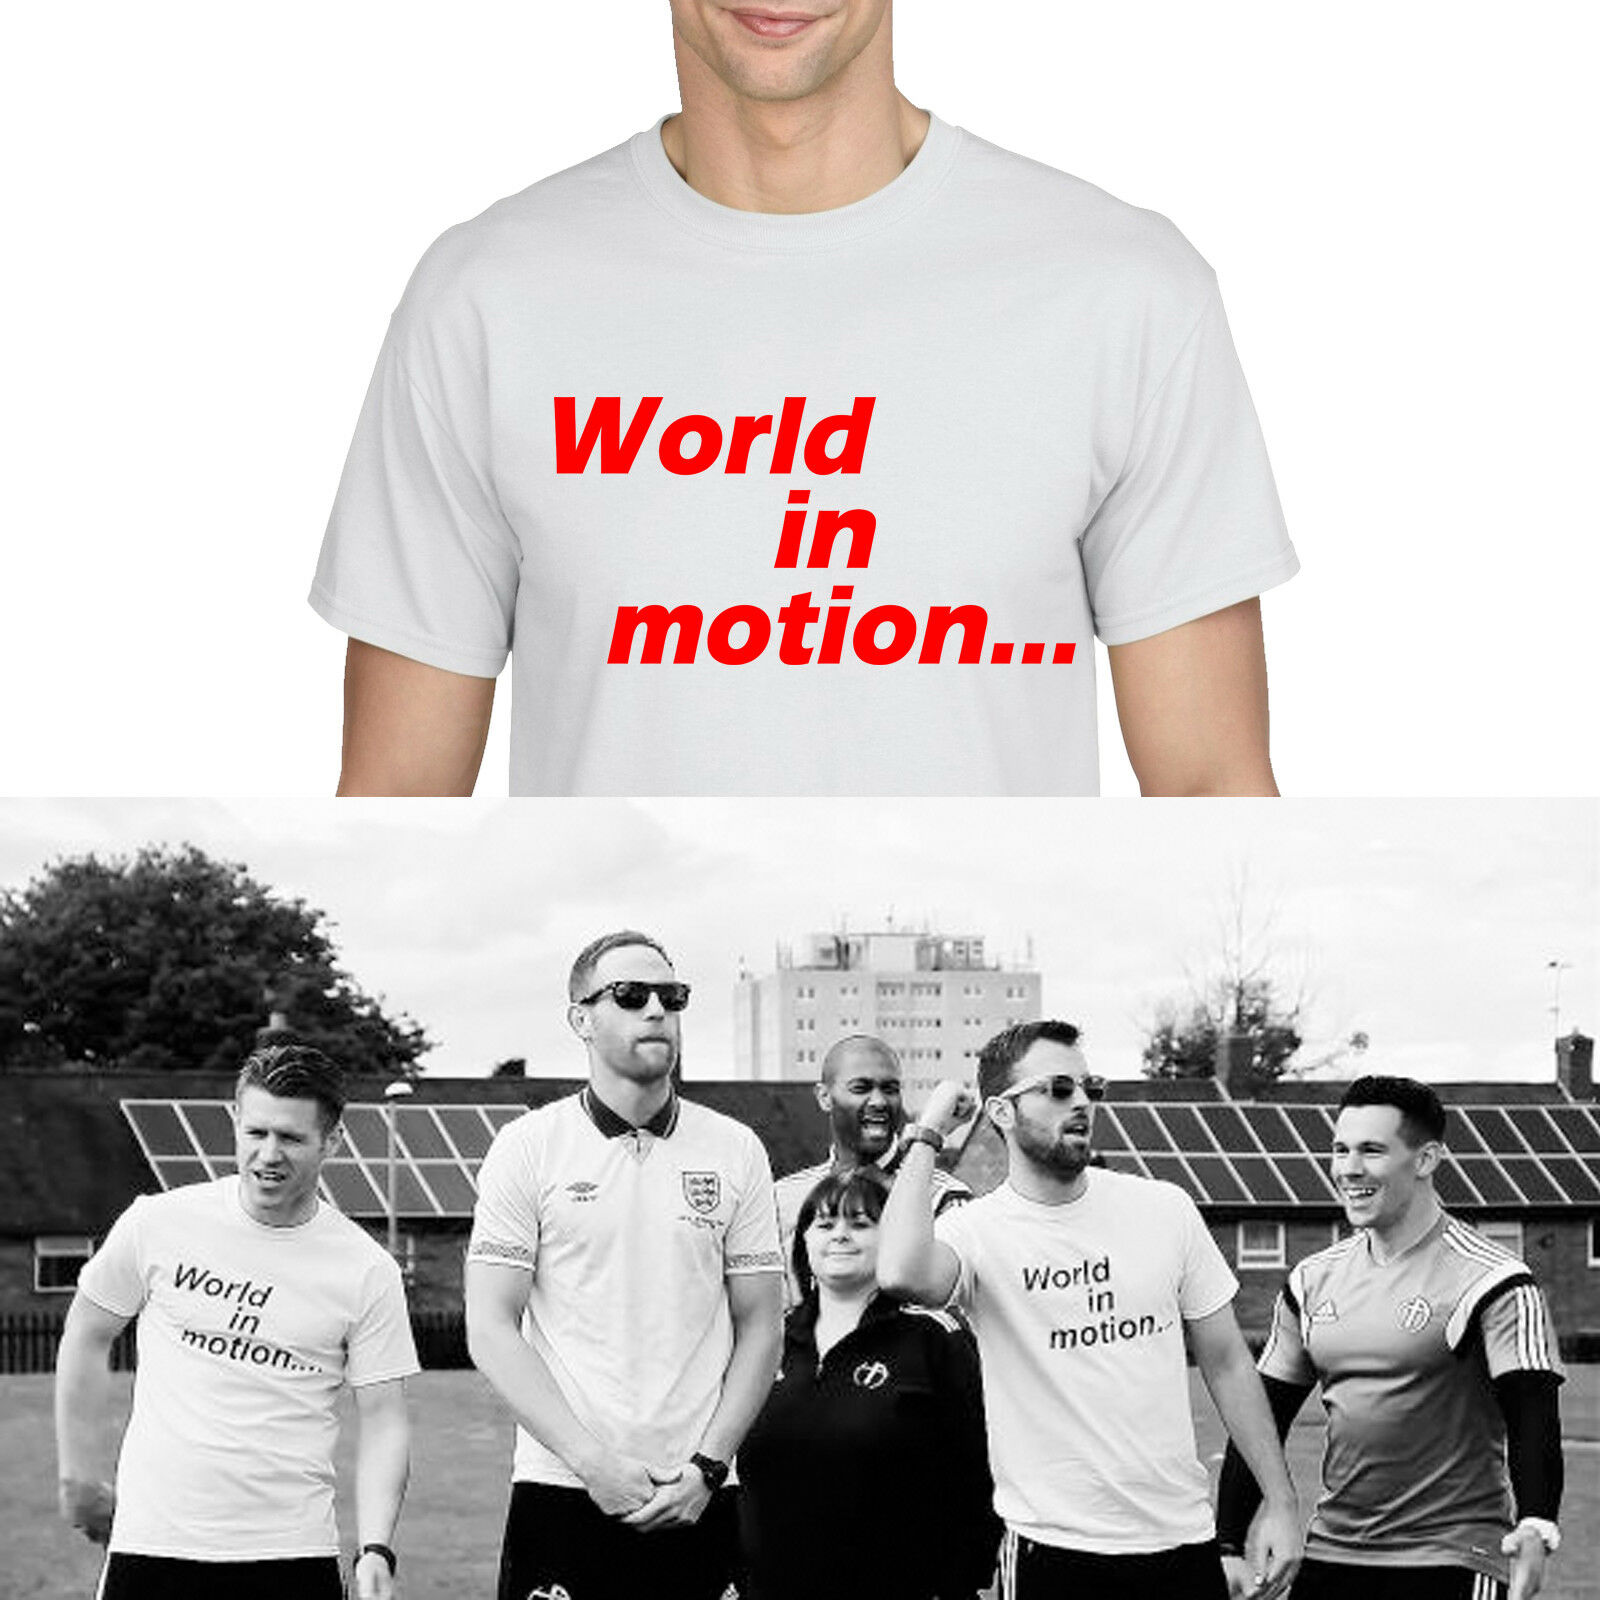 World in motion 1990 Angleterre chanson culte culte culte Ordre Nouveau Football shirt Barnes 890 49bf5a